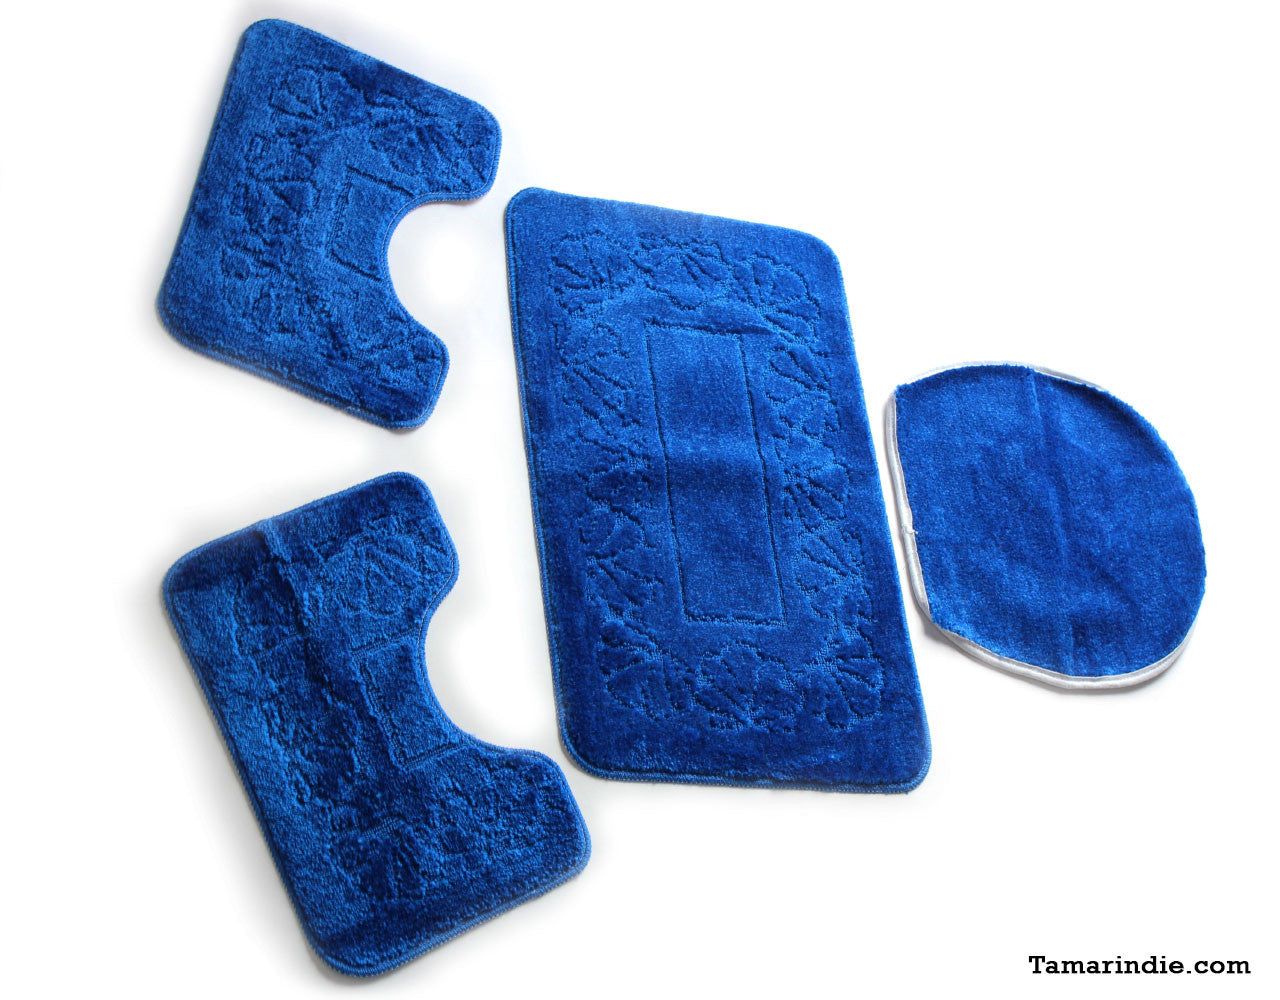 Dark Blue Bath  Mat Sets|سجاد حمام ازرق داكن